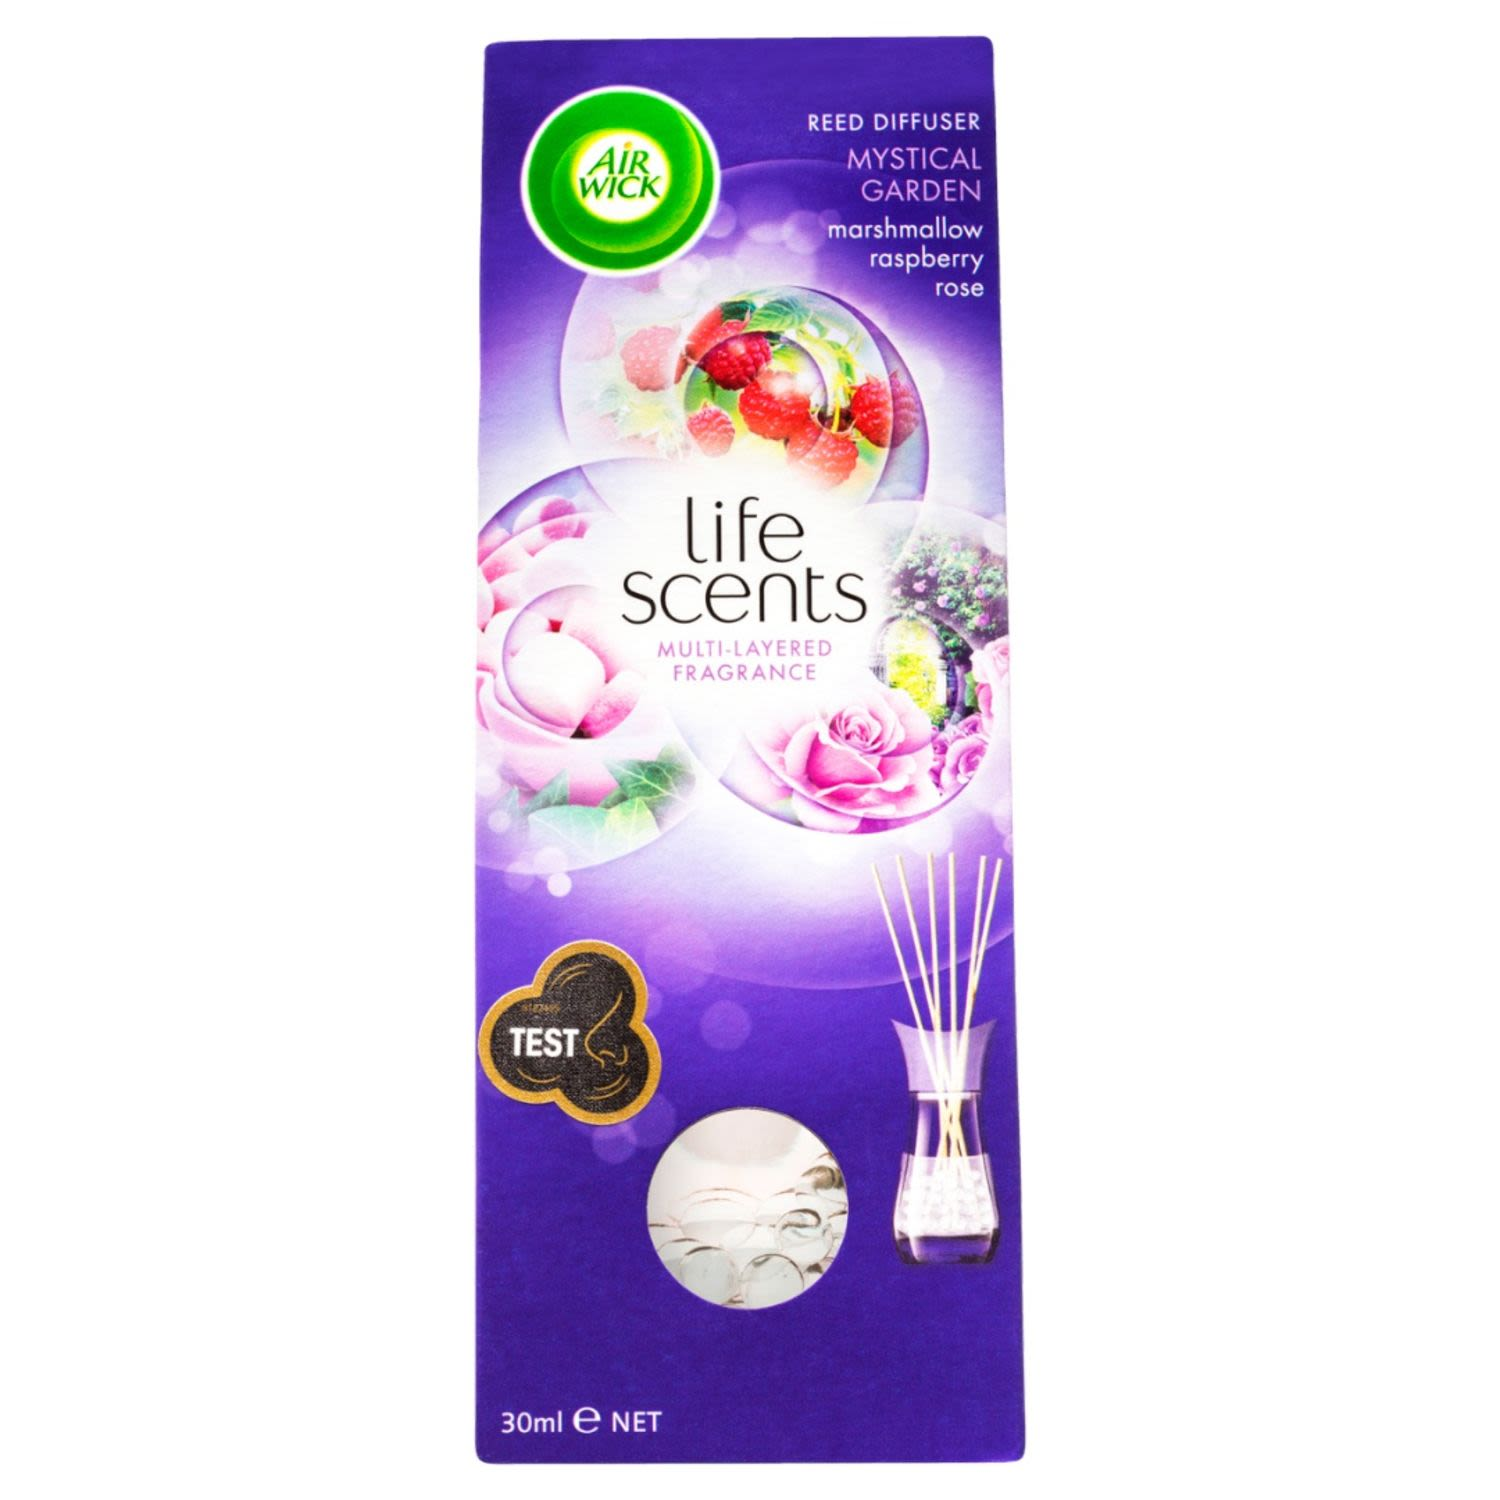 Air Wick Life Scents Reed Magical Garden, 30 Millilitre